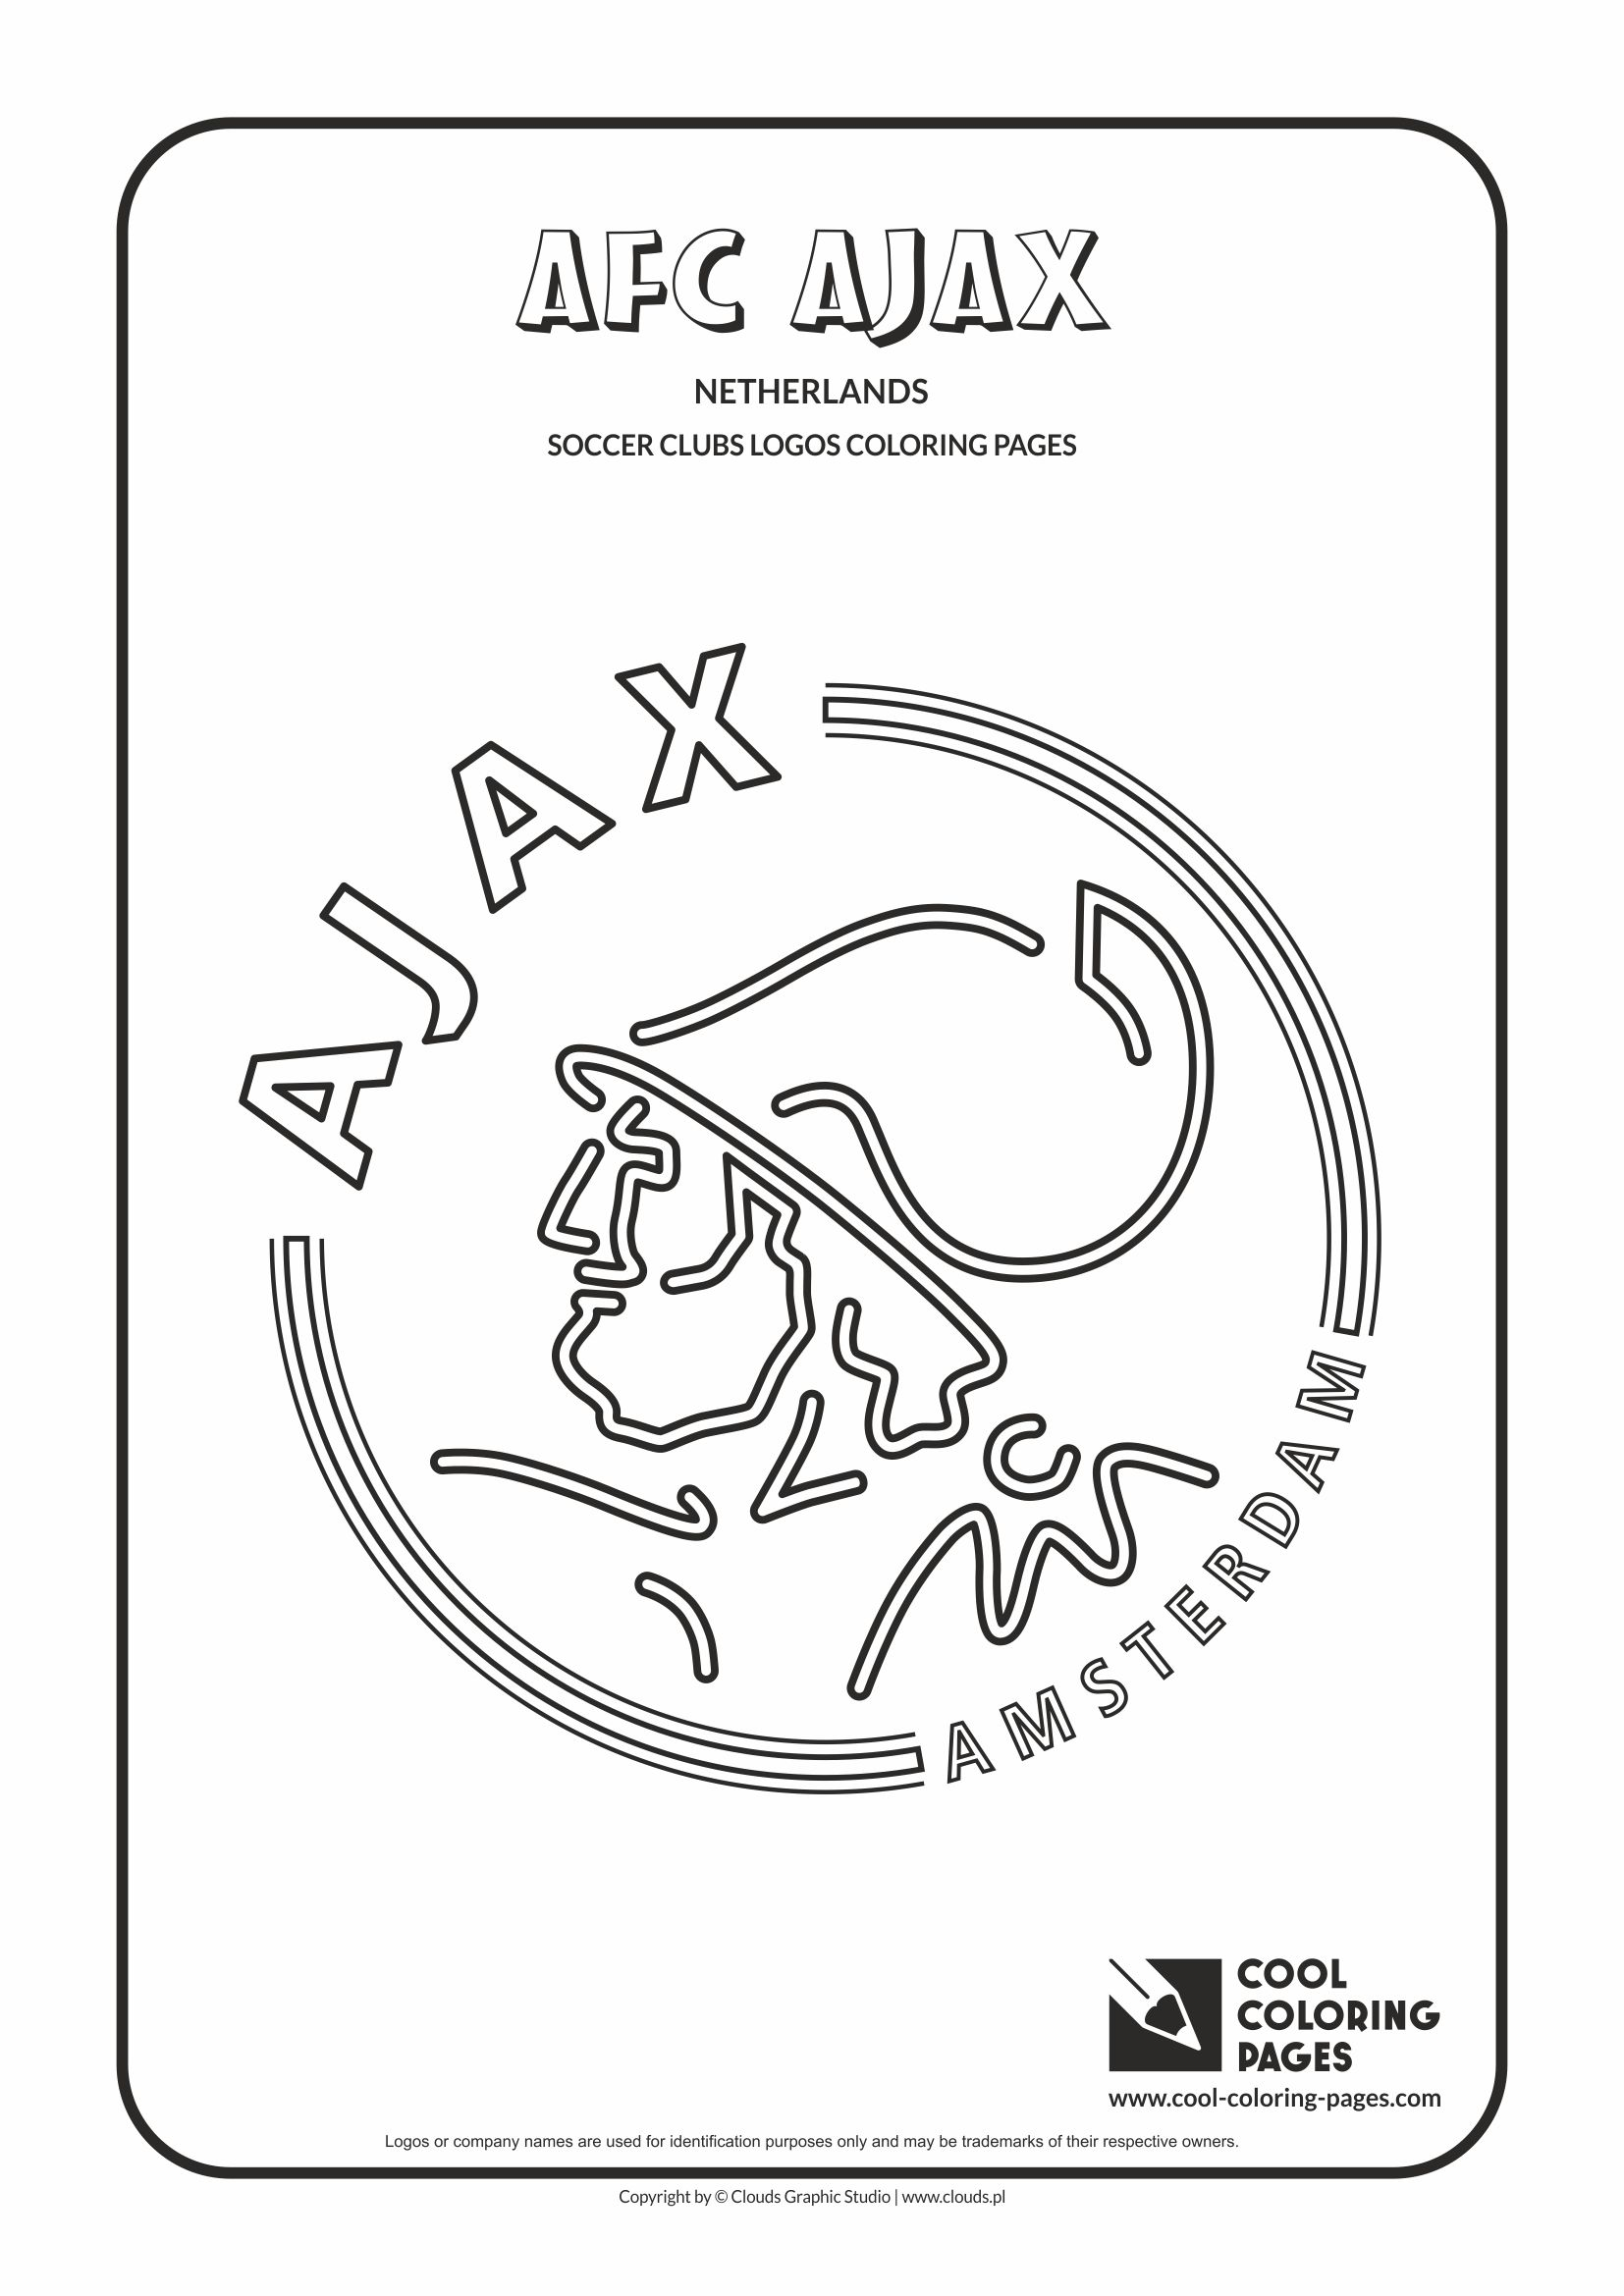 Cool Coloring Pages AFC Ajax Amsterdam Logo Coloring Page